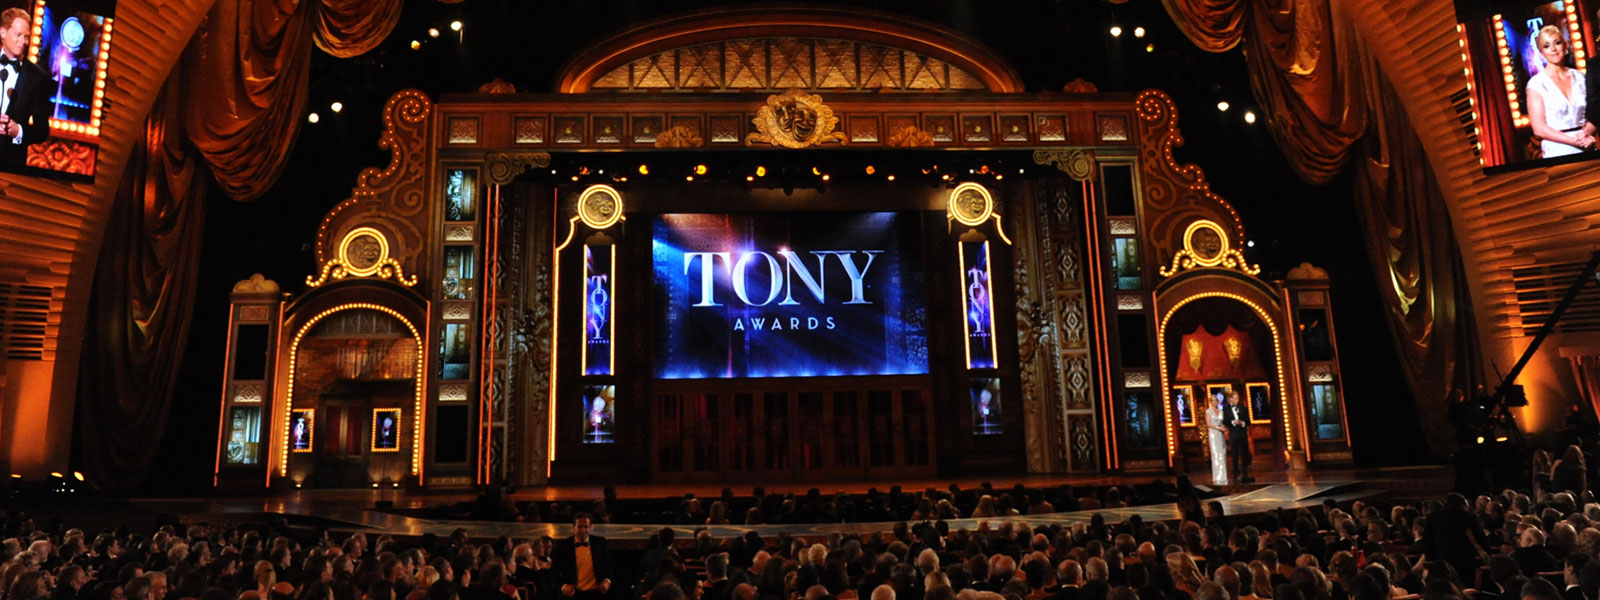 Two UNCSA alumni are nominated for Tony Awards - UNCSA